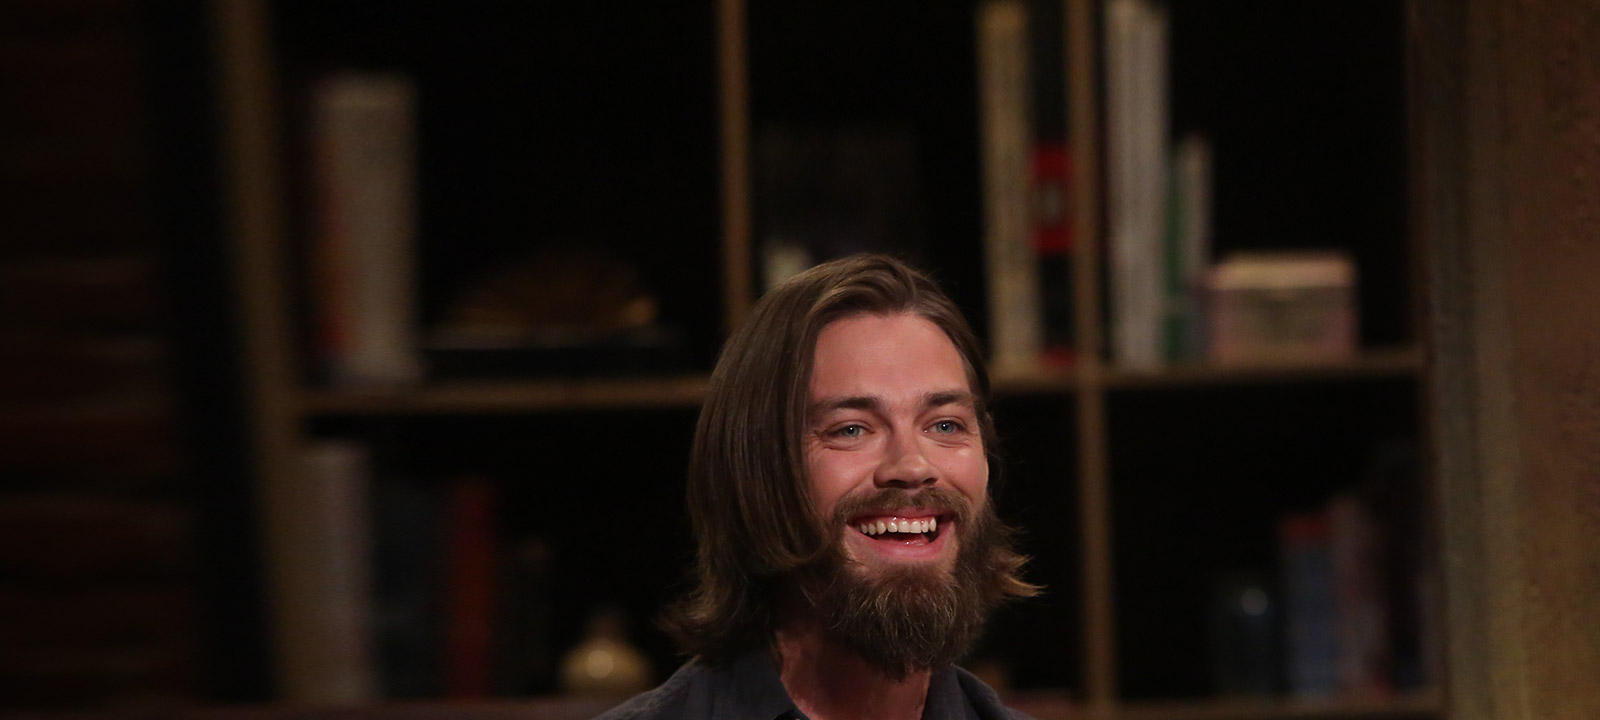 talking-dead-episode-902-jesus-tom-payne-800×600